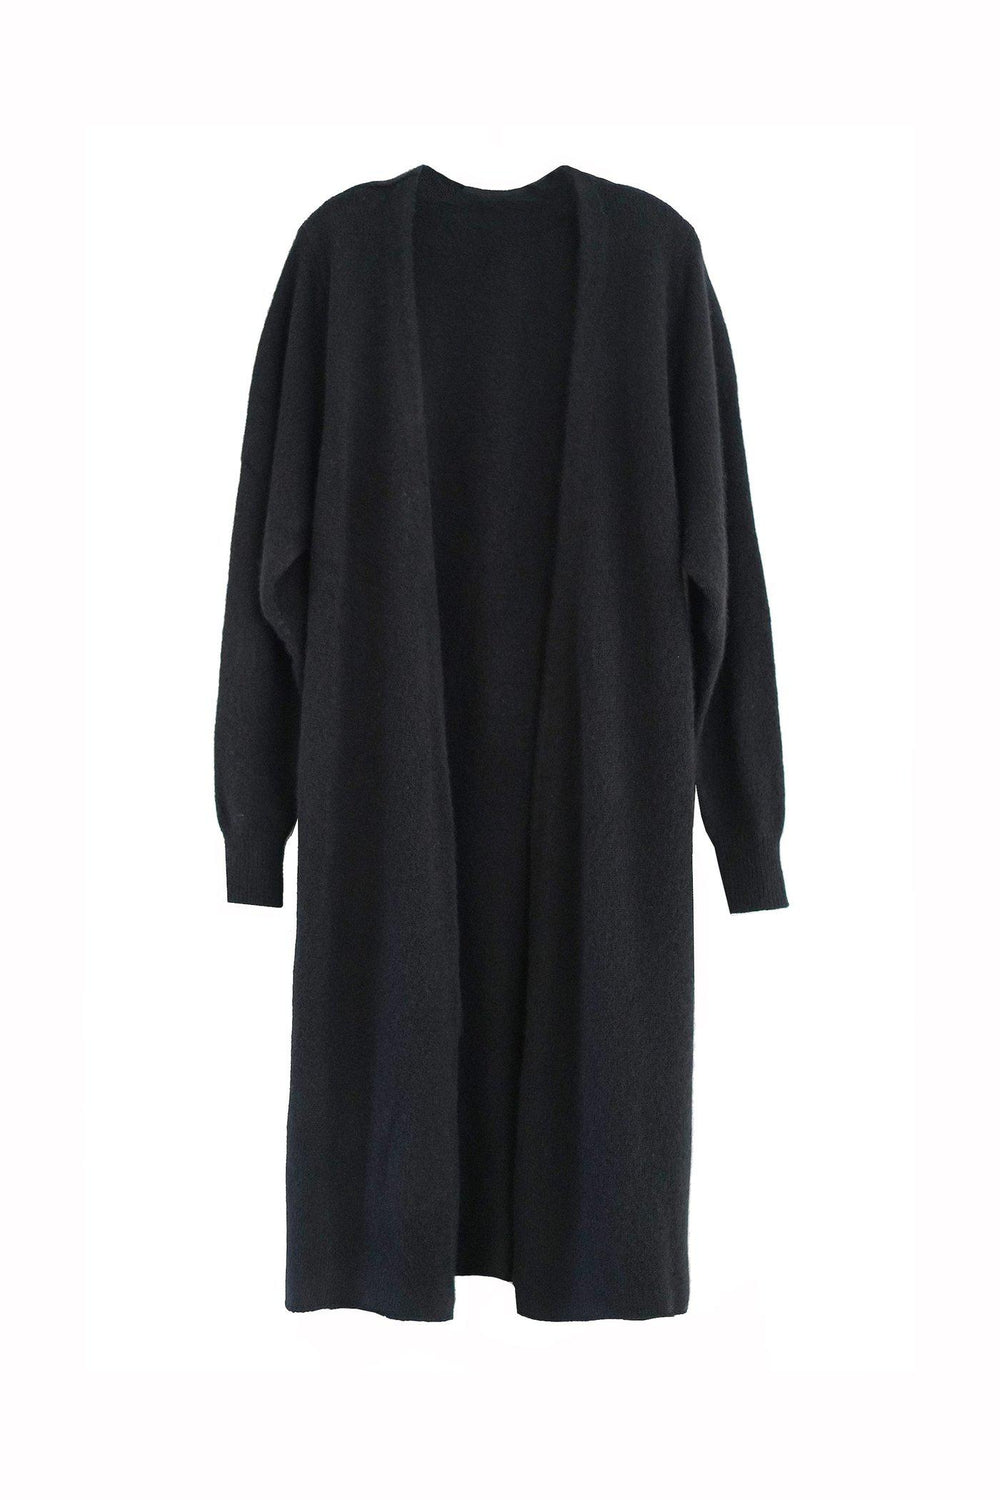 RYAN ROCHE Our signature luxury wrap knit robe in classic black